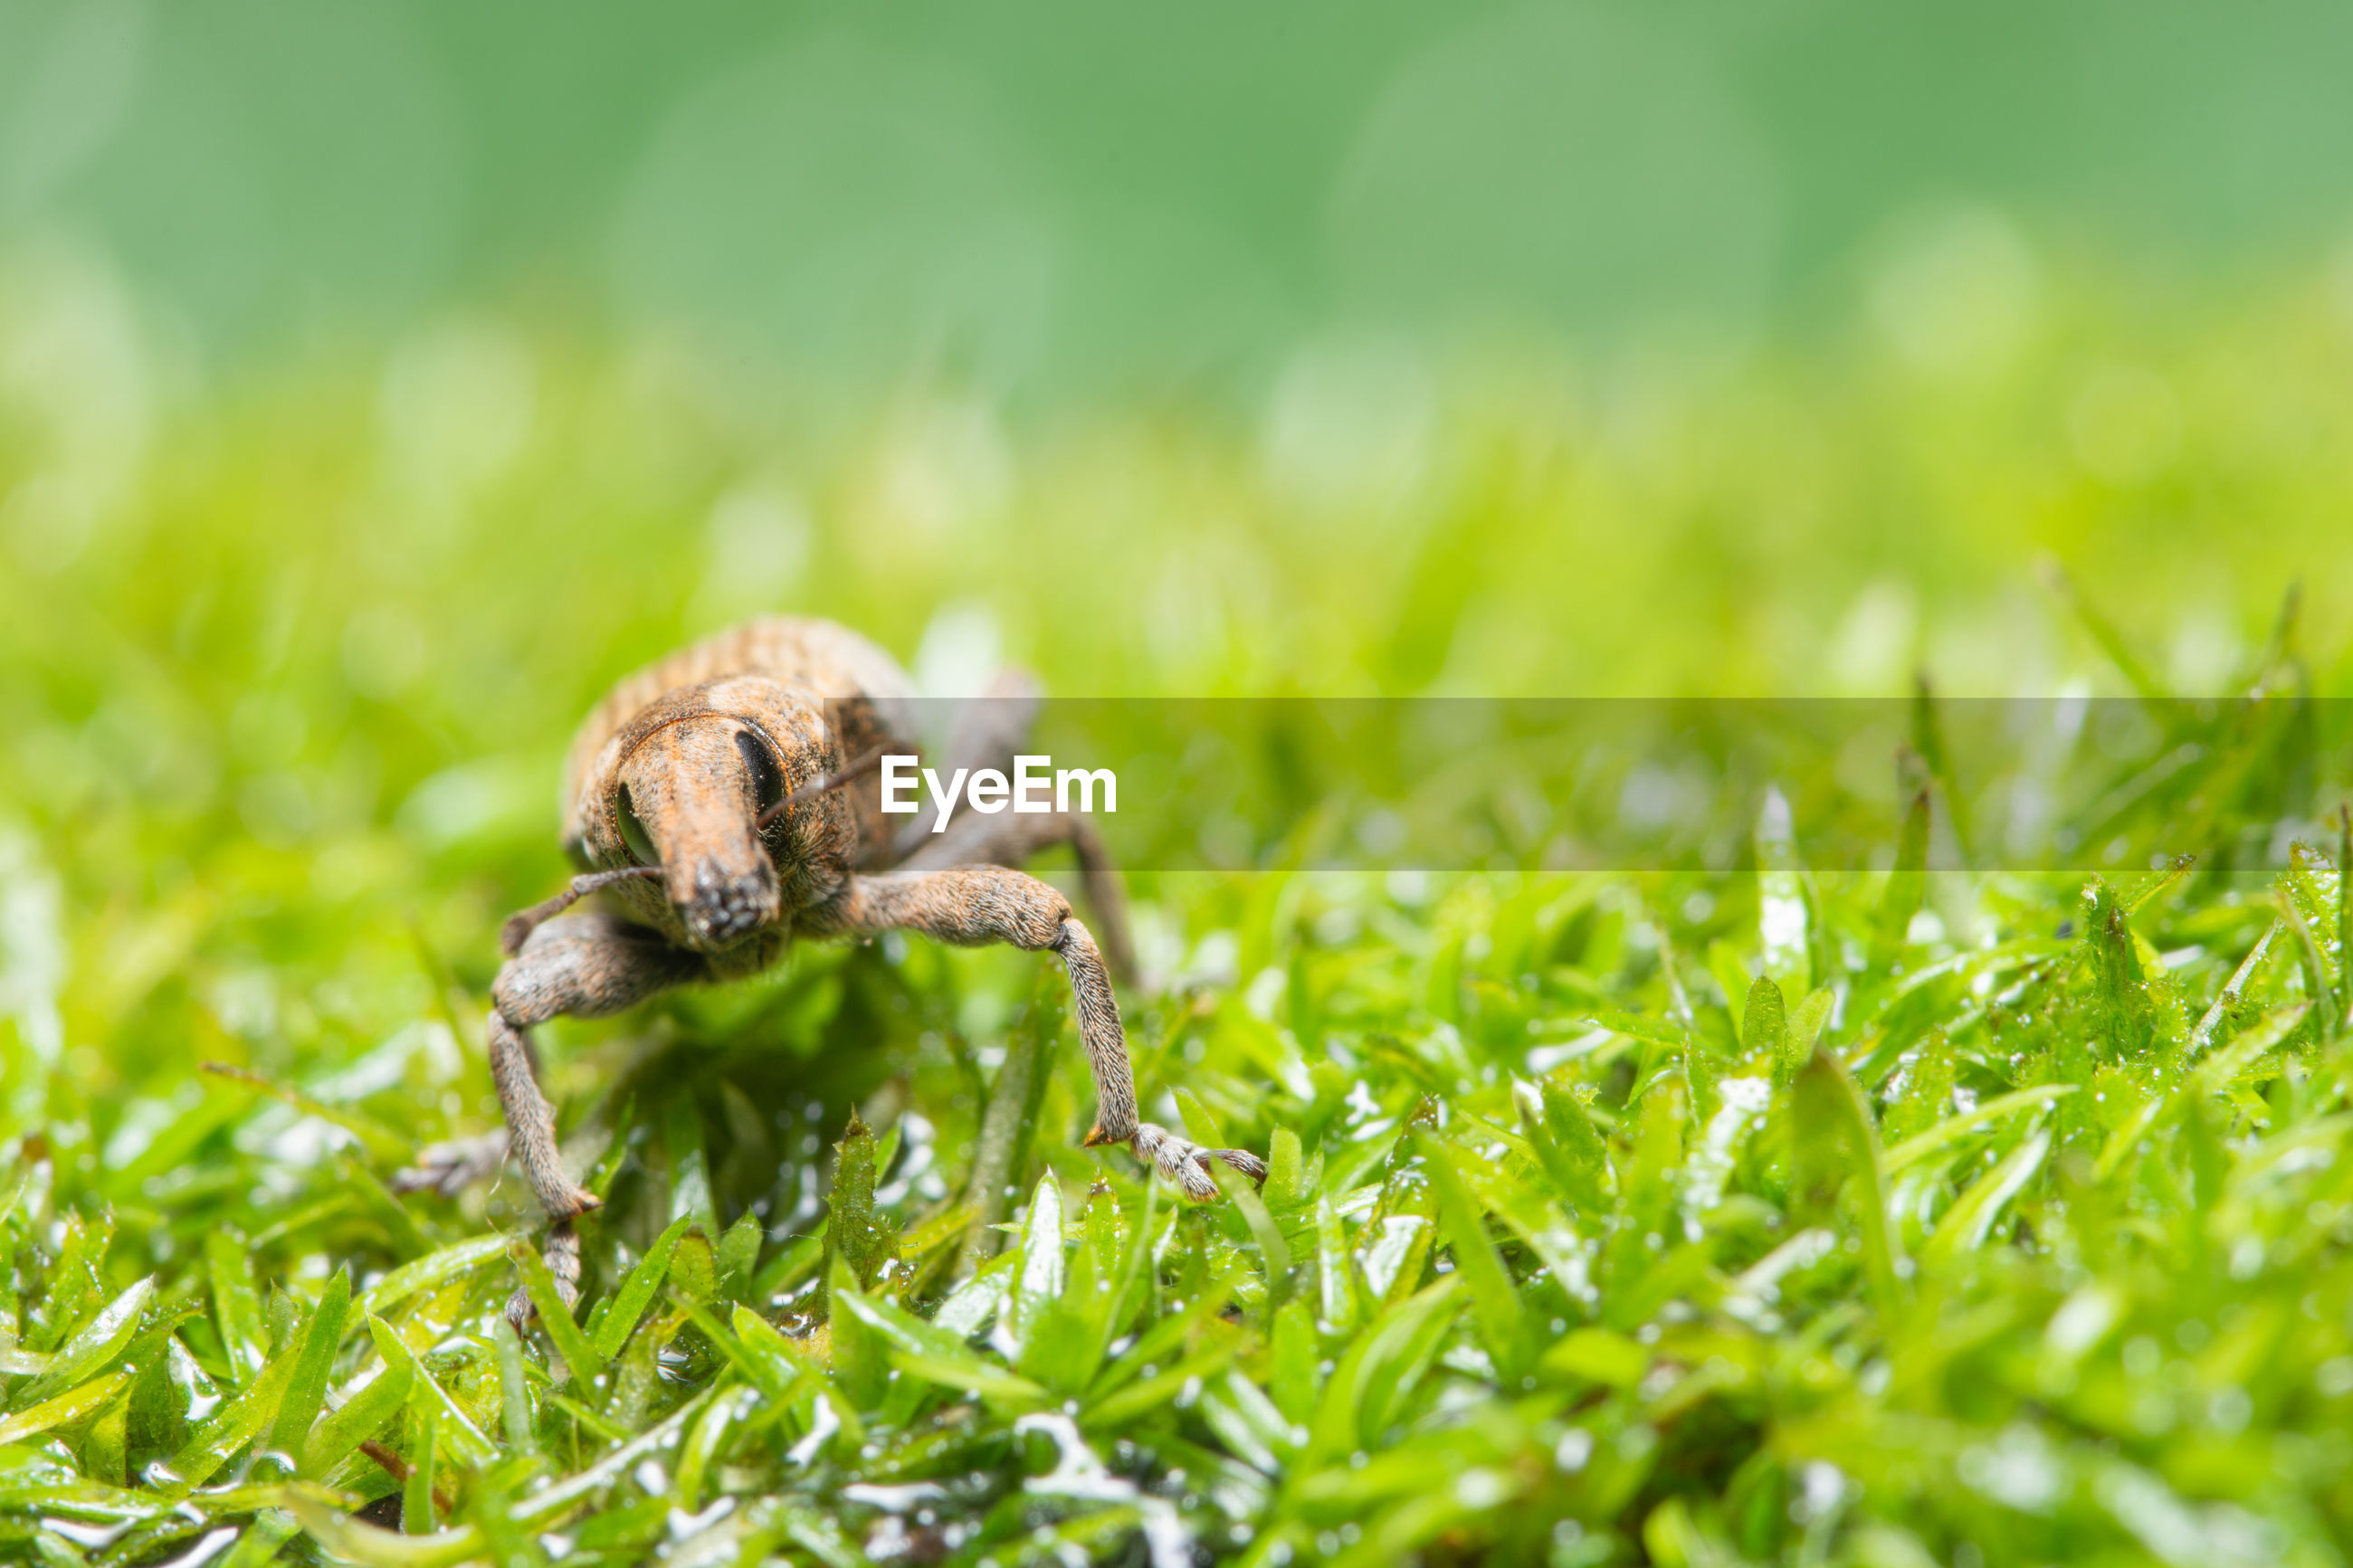 Close-up of spider on grass